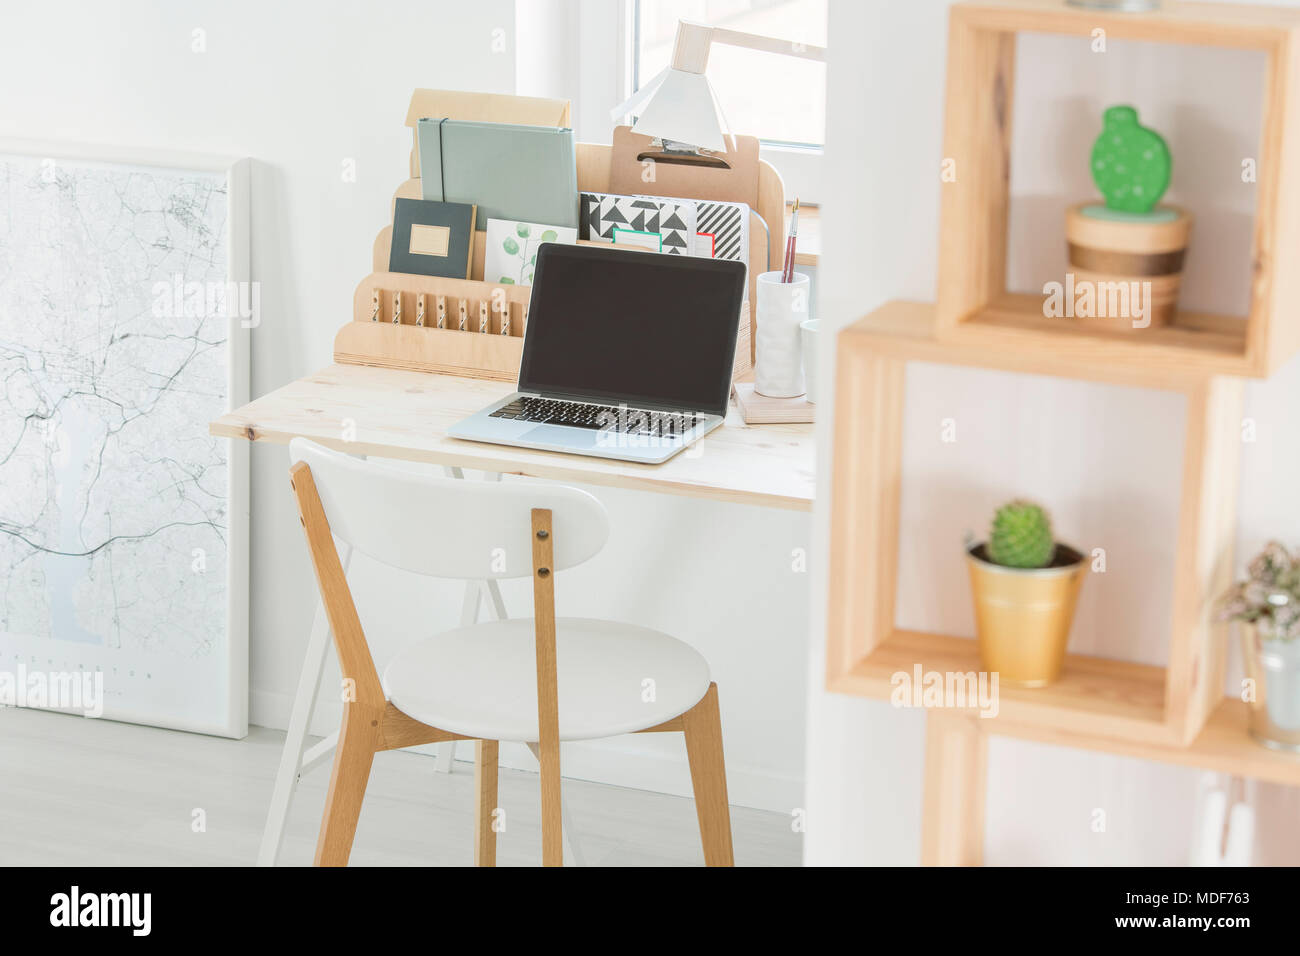 White Desk Chair Wood Laptop On A Wooden Desk Chair And Shelves With Cactus In A White